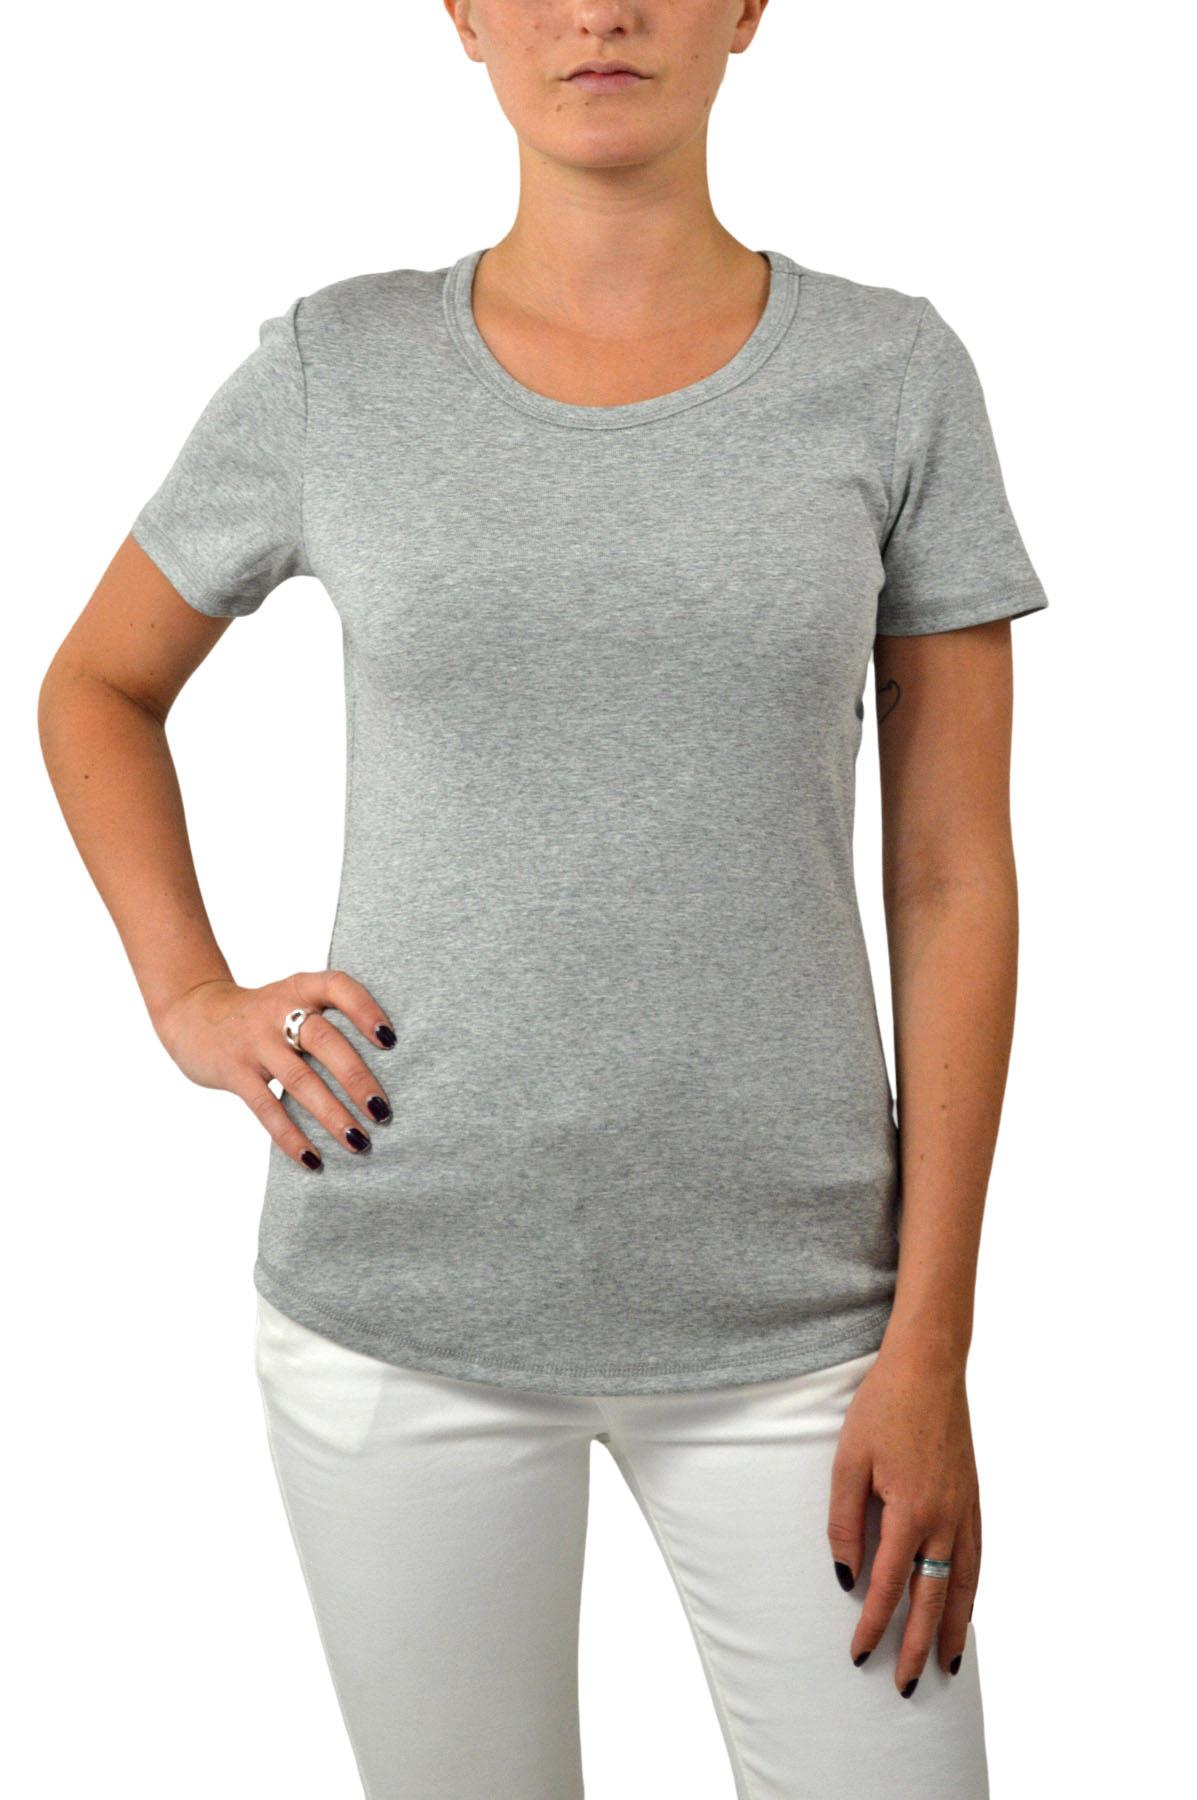 M-amp-S-Ladies-Short-Sleeve-Cotton-T-Shirt-Slim-Fit-Curved-Hem-Size-4-to-24 thumbnail 15